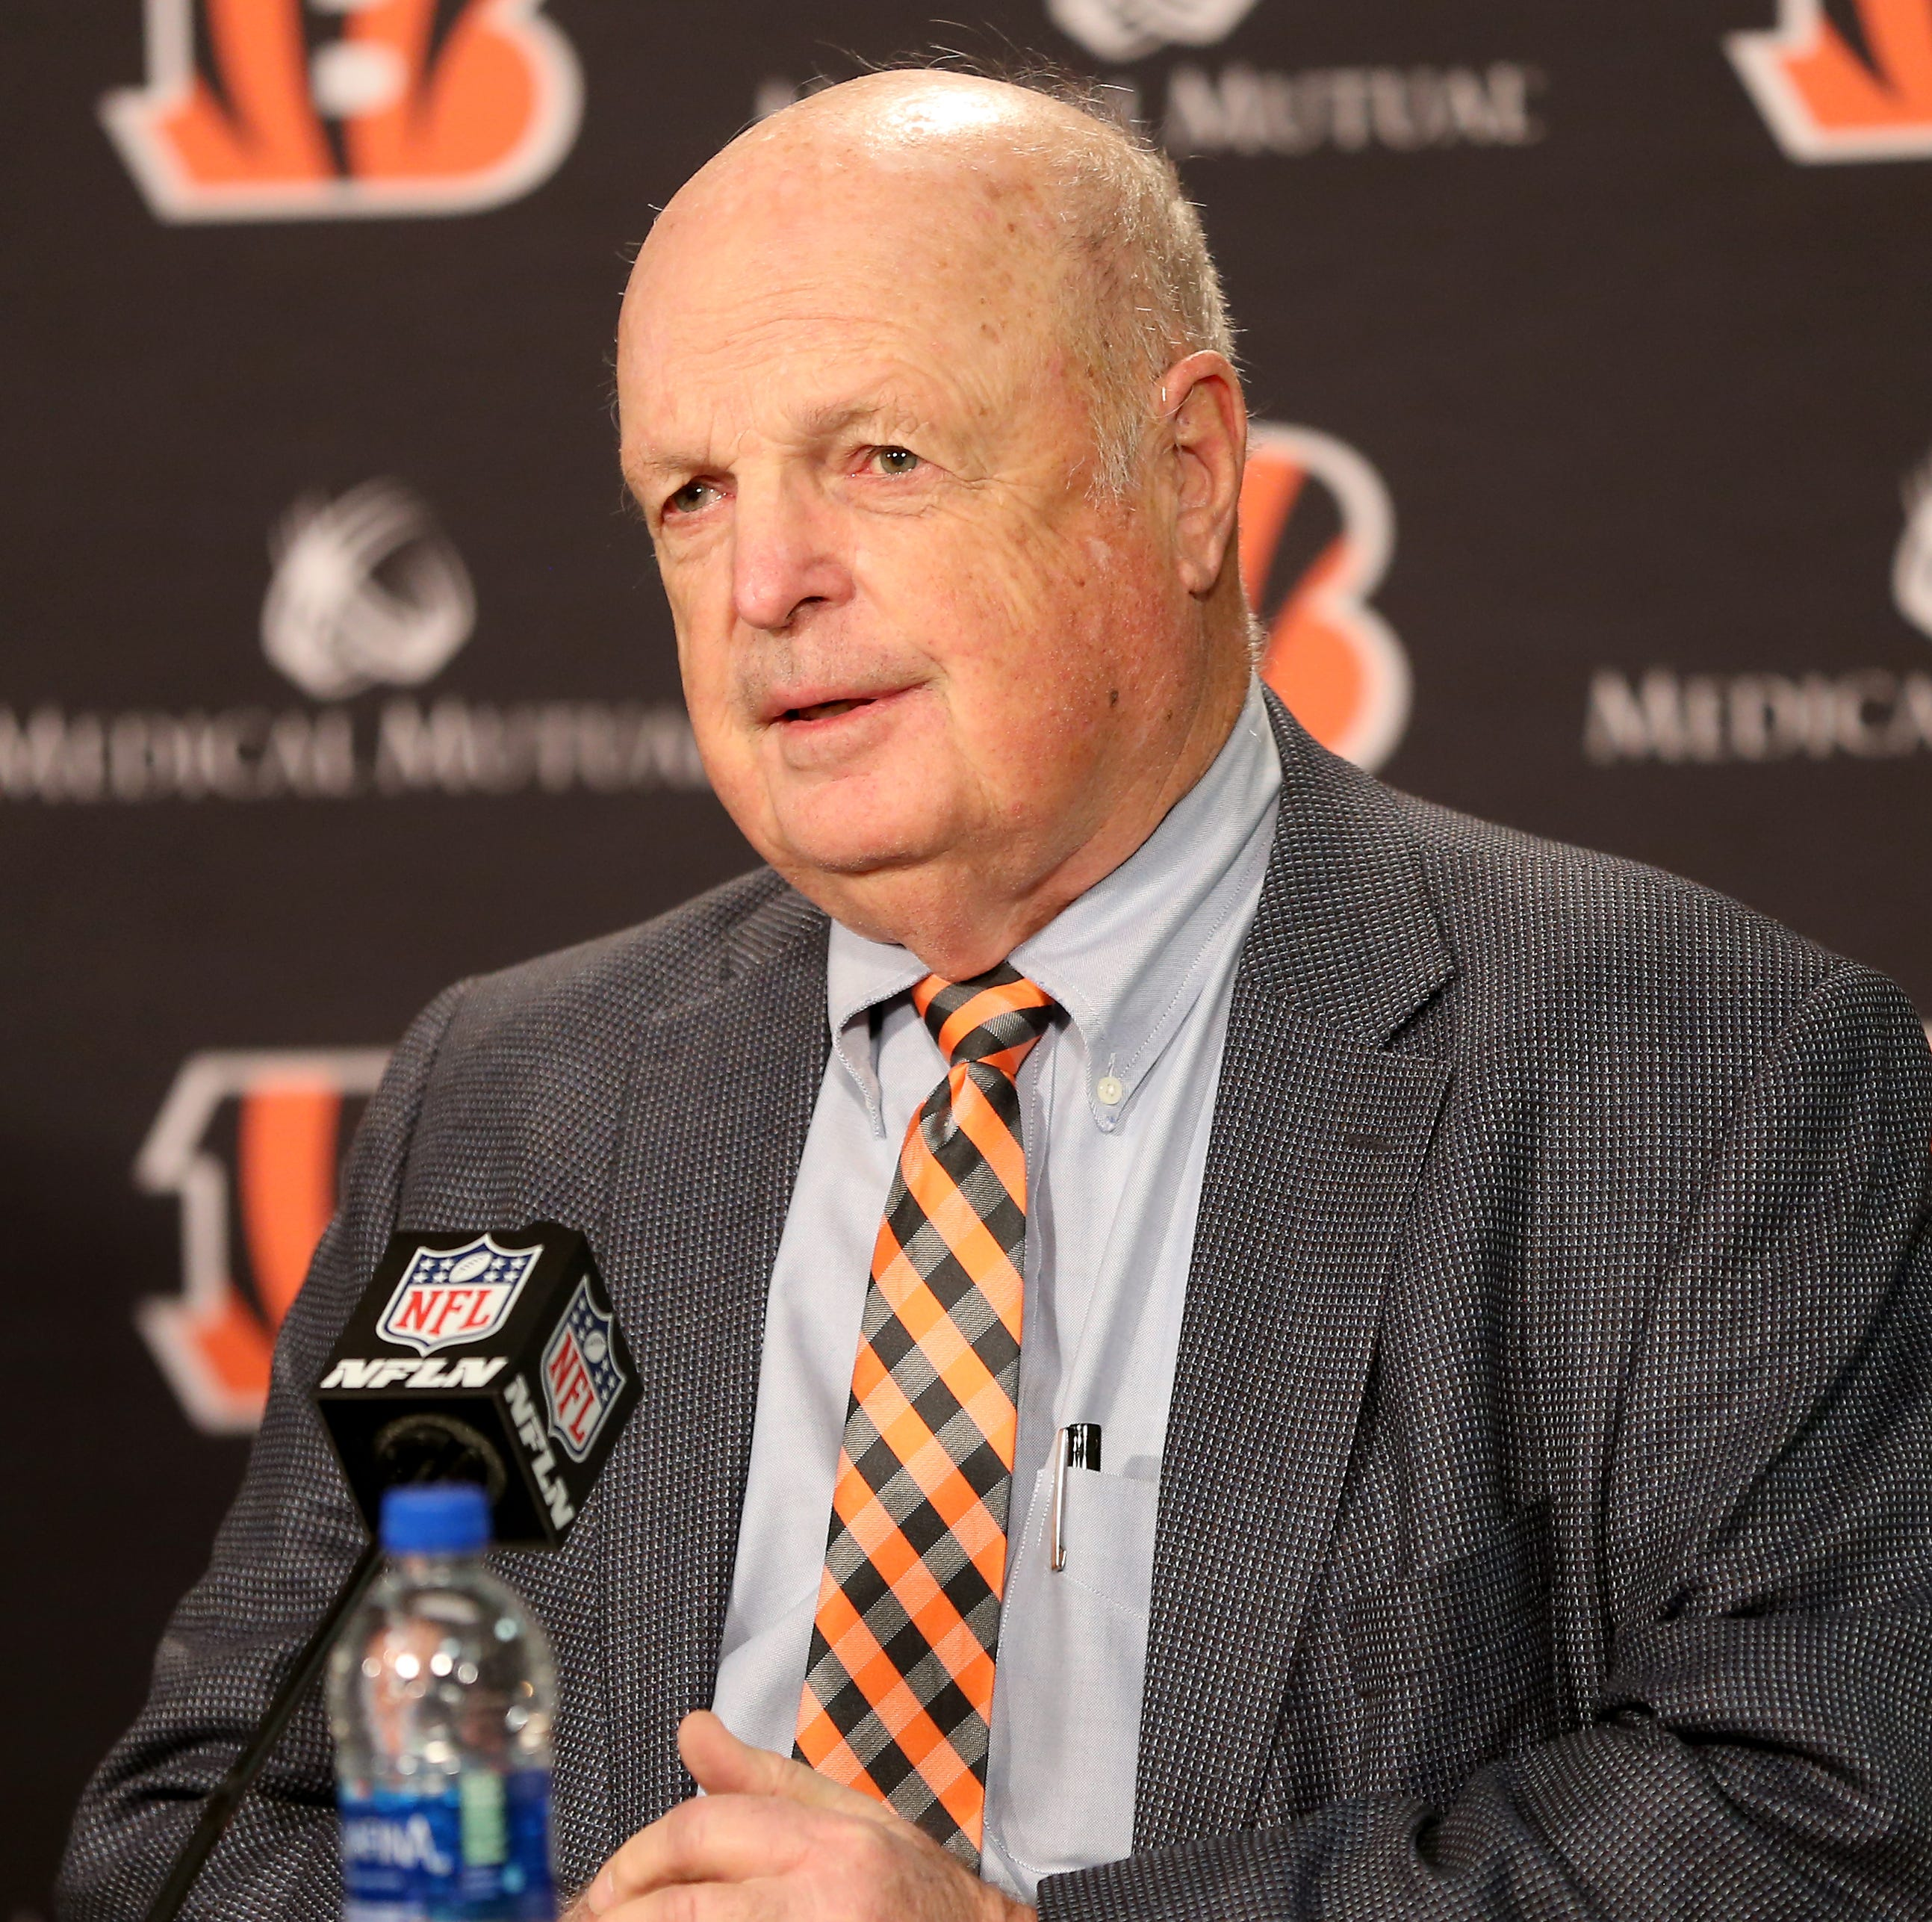 5 things Cincinnati Bengals owner Mike Brown said at NFL annual meetings